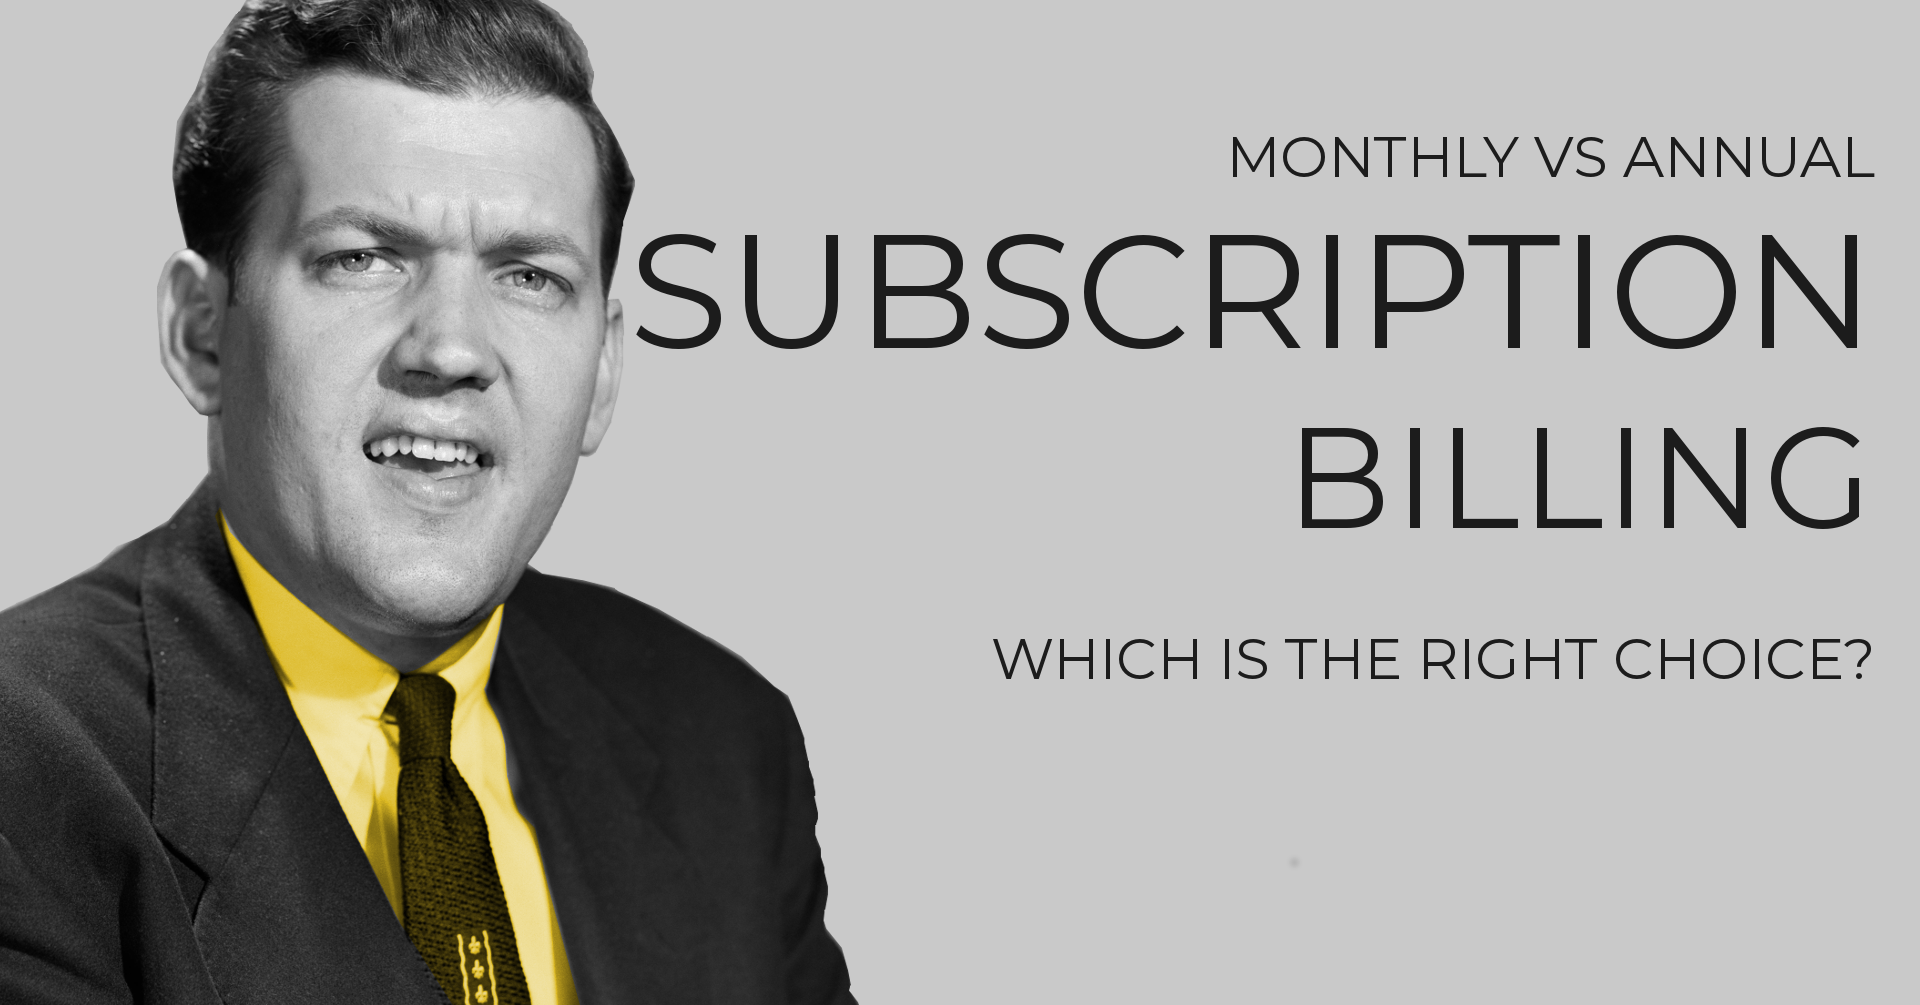 Monthly vs Annual Subscription Billing - Which is the right choice?